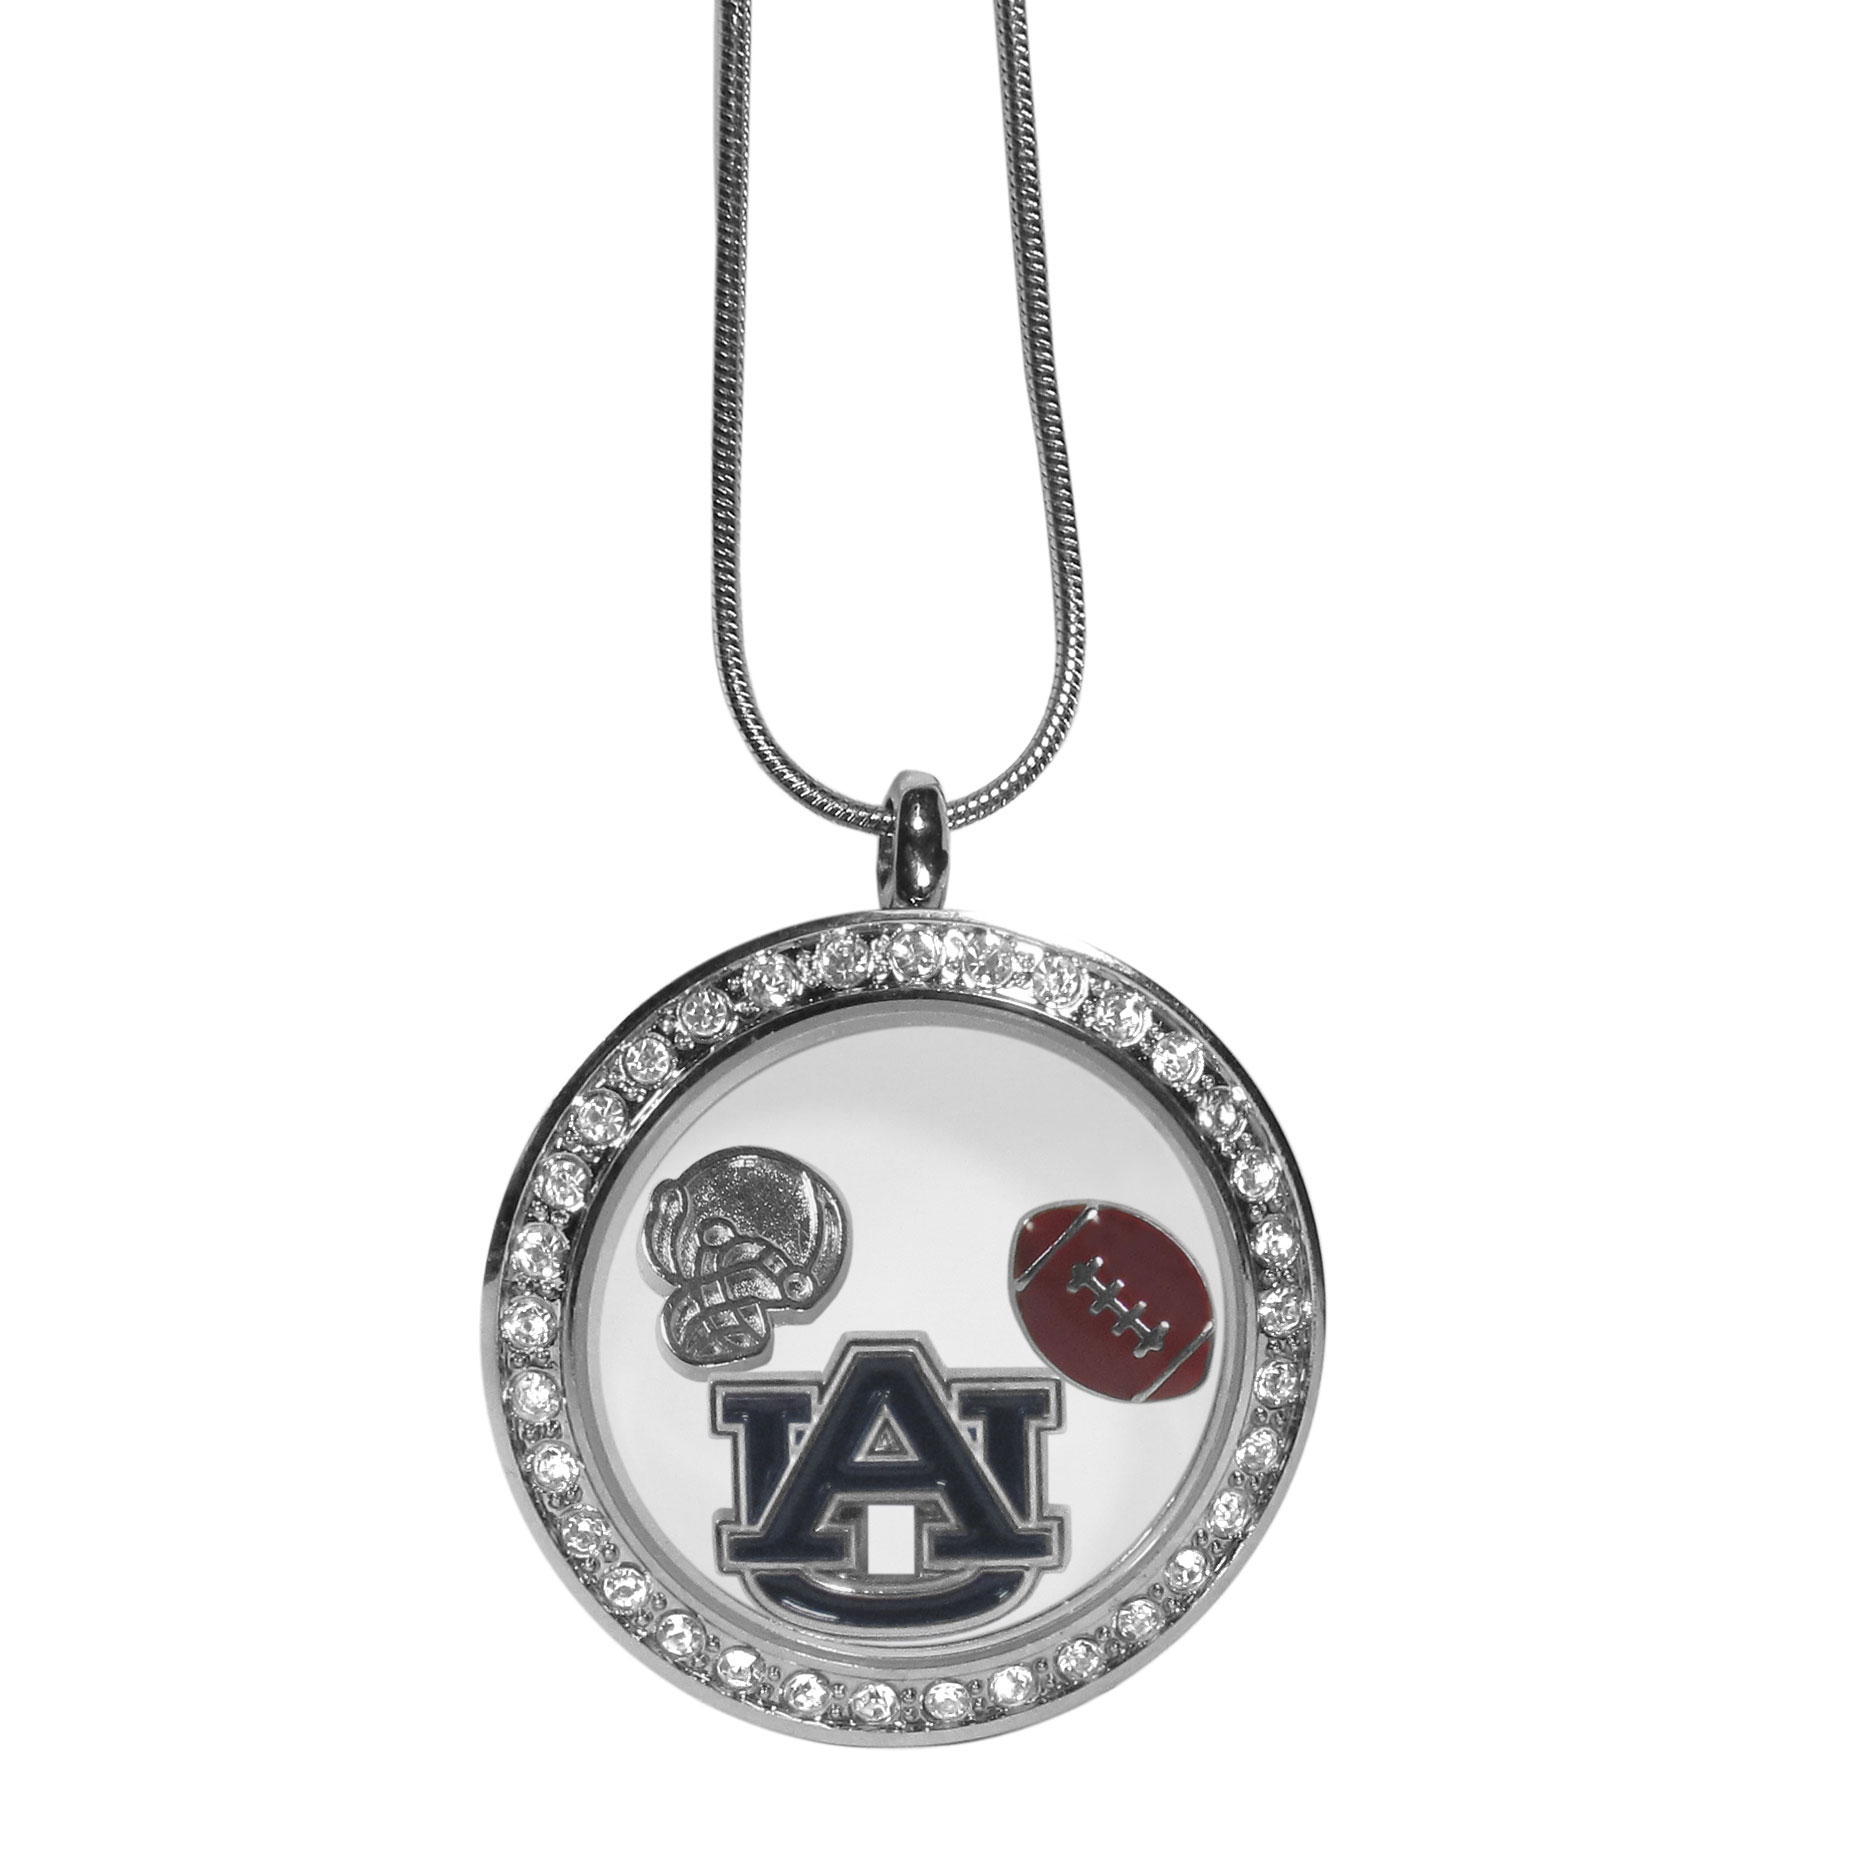 Auburn Tigers Locket Necklace - We have taken the classic floating charm locket and combined with licensed sports charms to create a must have fan necklace. The necklace comes with 3 charms; 1 Auburn Tigers charm, one football charm and one helmet charm. The charms float in a beautiful locket that has a strong magnetic closure with a rhinestone border. The locket comes on an 18 inch snake chain with 2 inch extender.